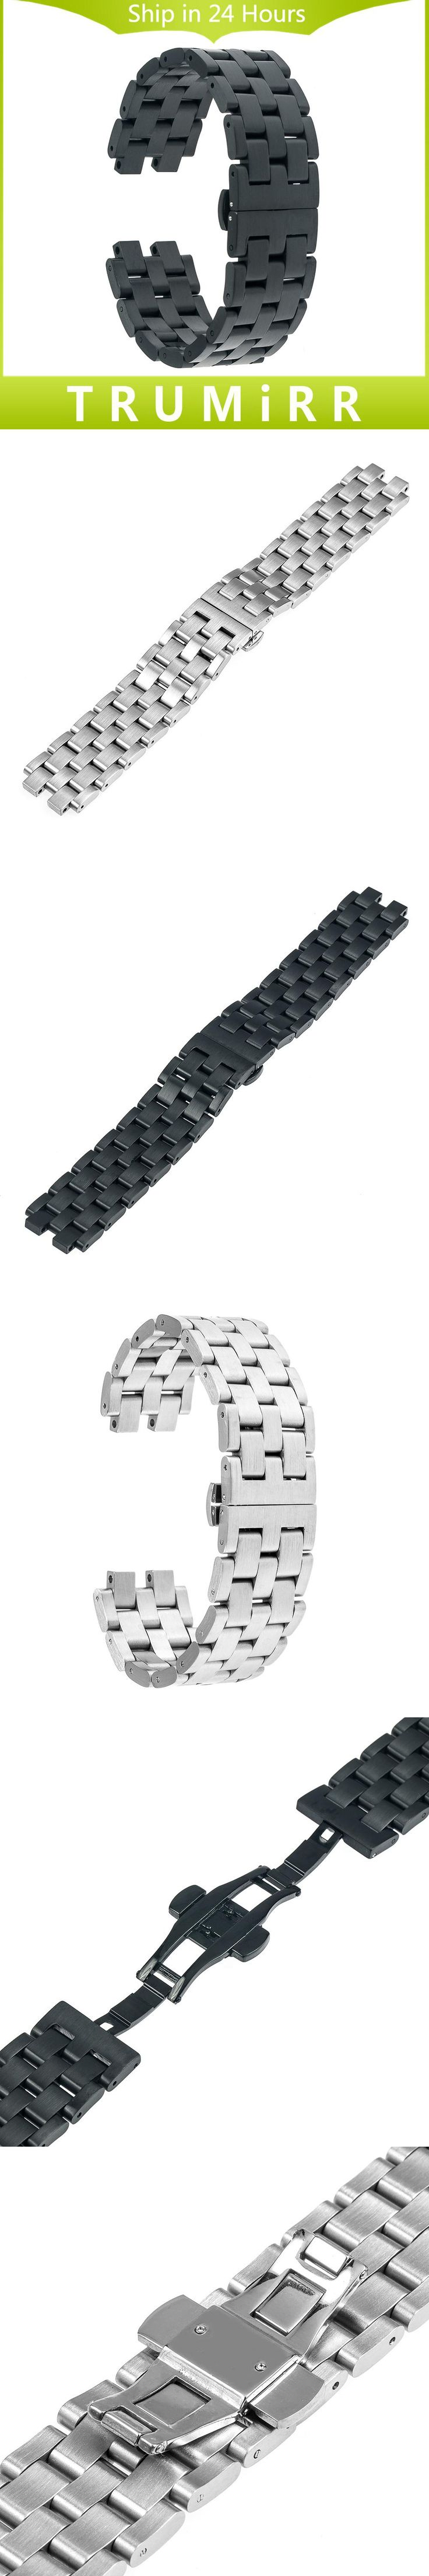 22mm Stainless Steel Watchband for Pebble Steel 2 Watch Band Butterfly Buckle Bracelet Strap w/ all Links Removable Black Silver